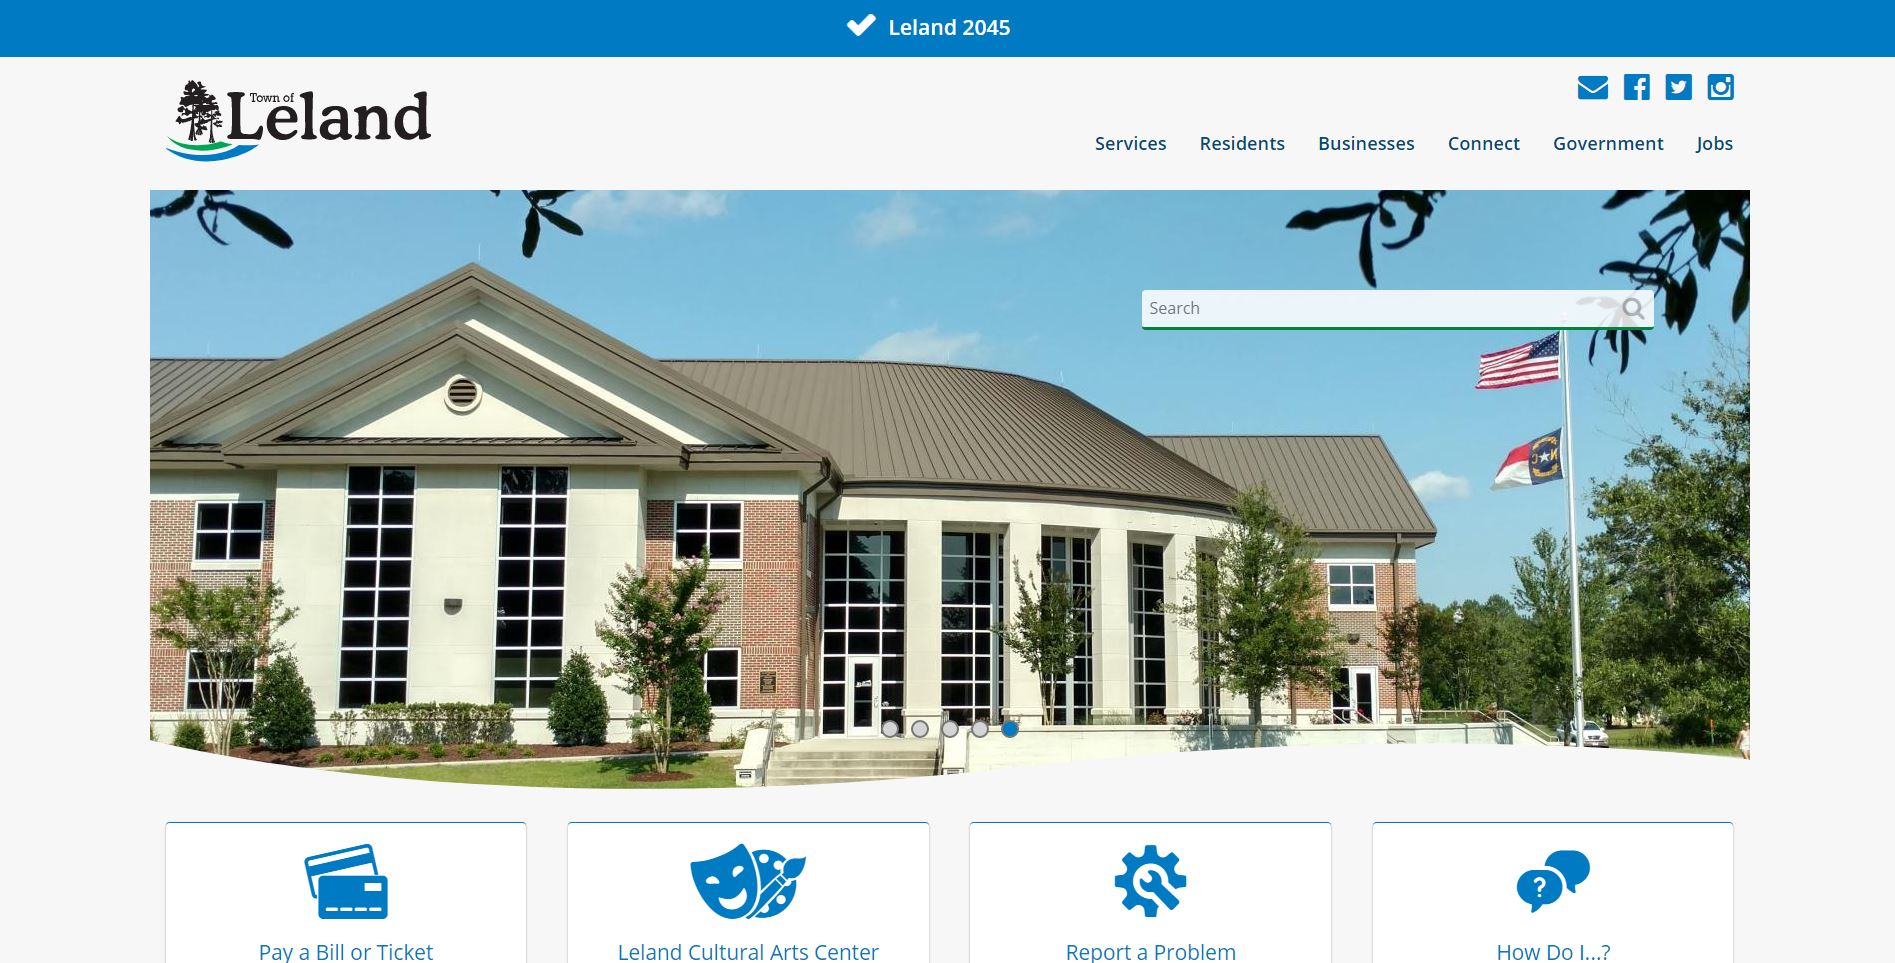 Feedback Needed for Town of Leland Website Redesign